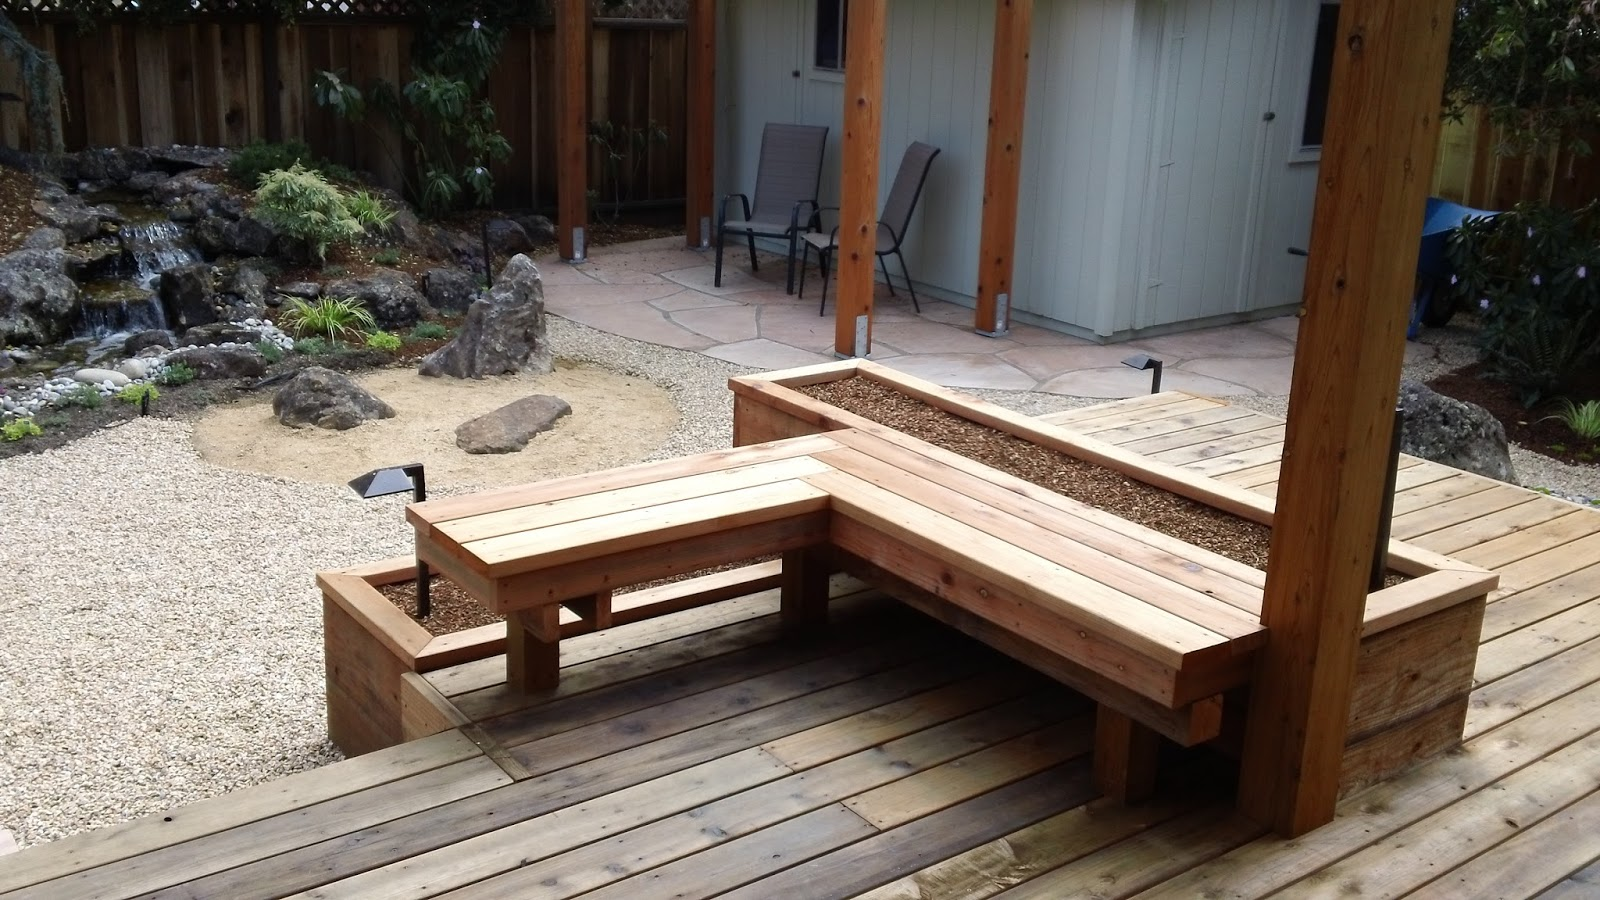 Living waters landscaping asheville japanese gardening for Japanese decking garden